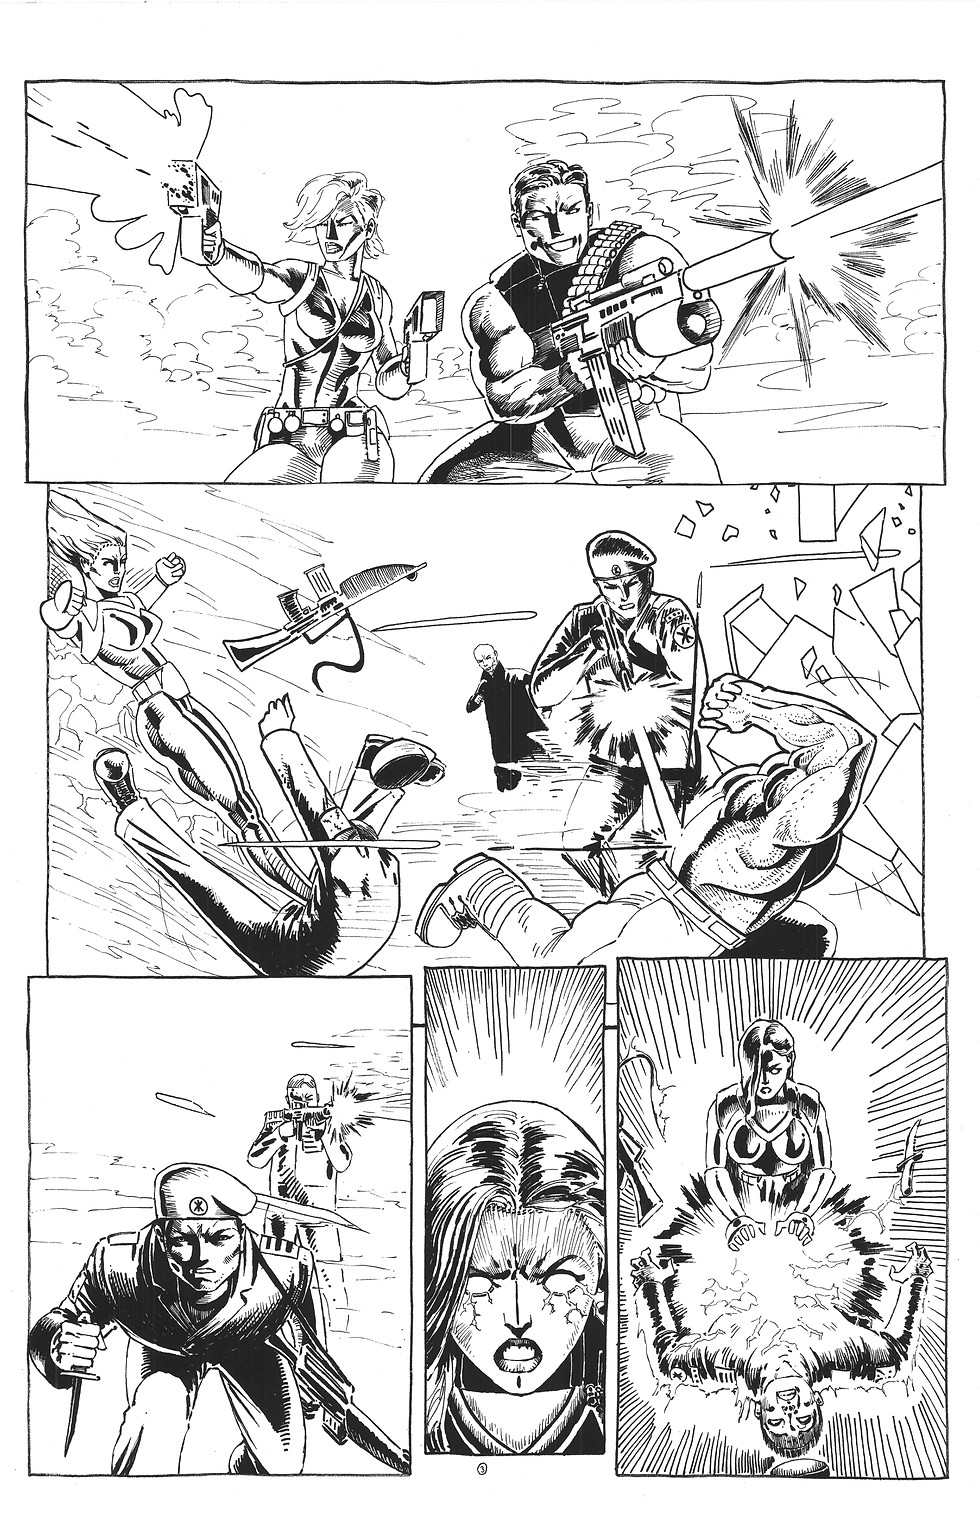 Live Wire Issue 1 (pages 3-14).jpg